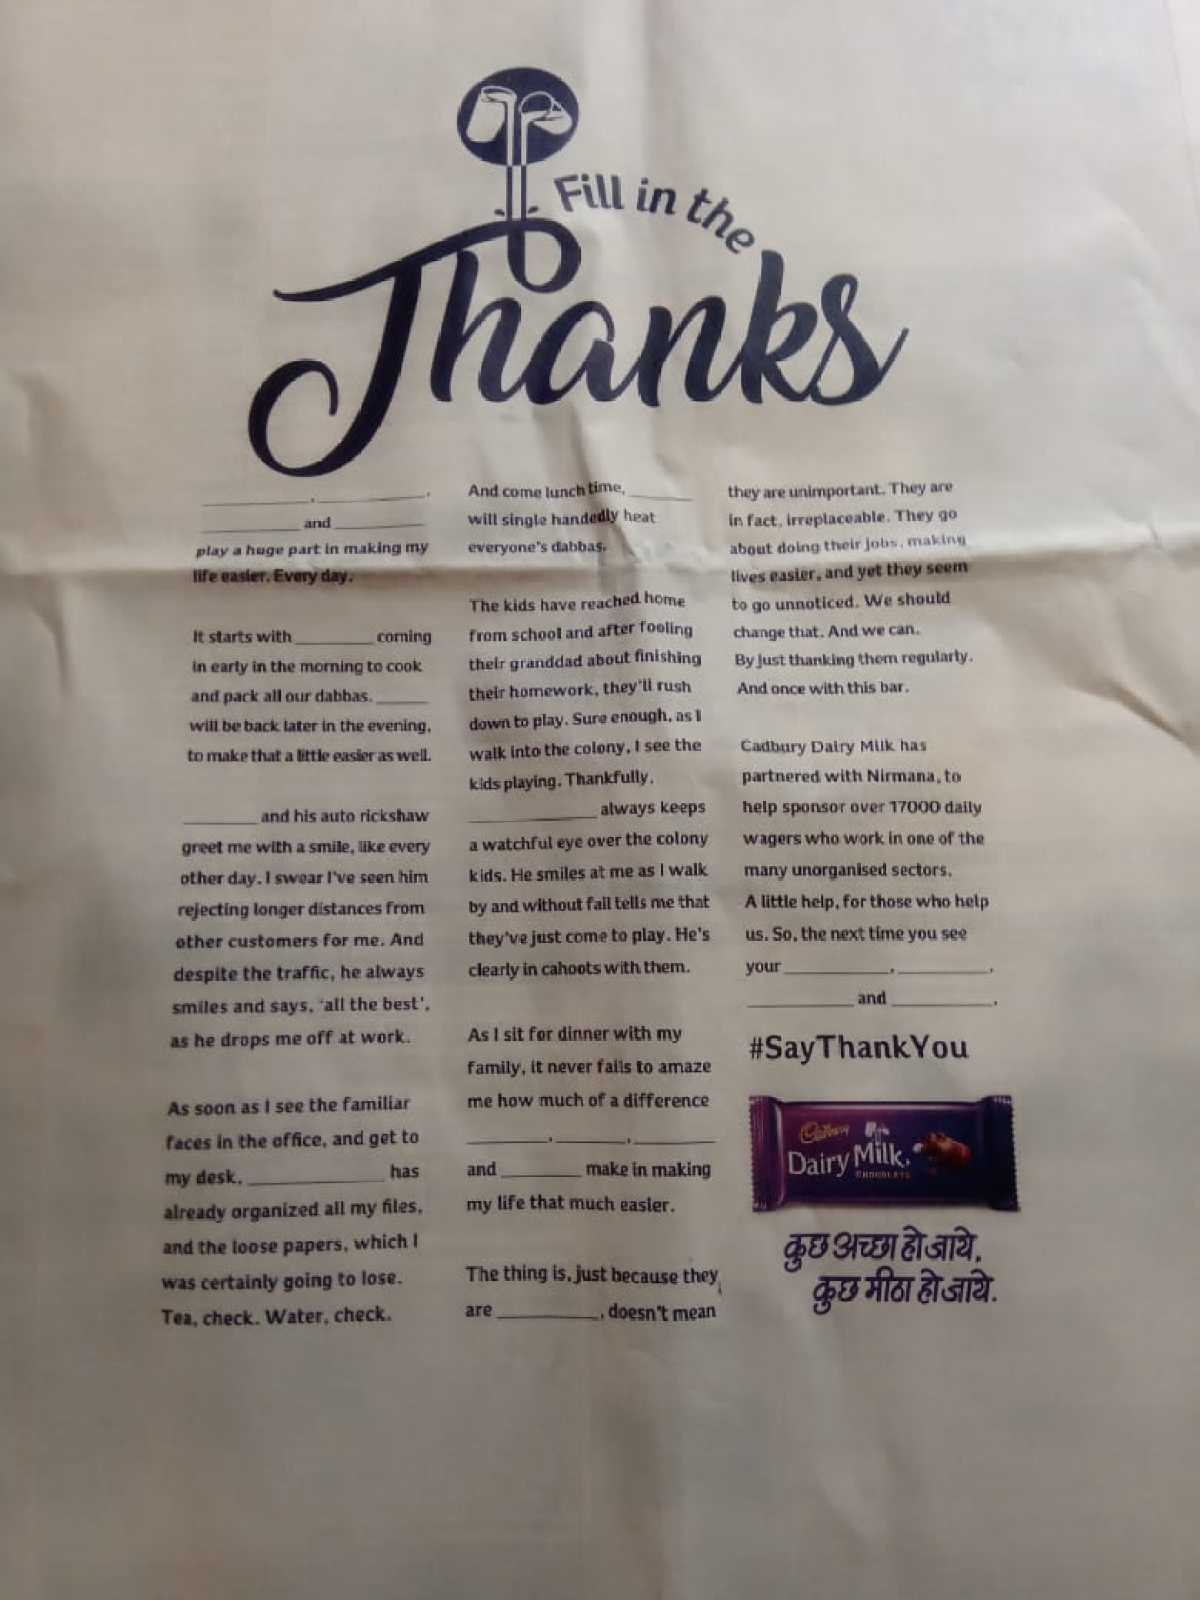 Cadbury Dairy Milk's 'Fill in the Thanks' print ad urges us to thank the daily wagers in our lives